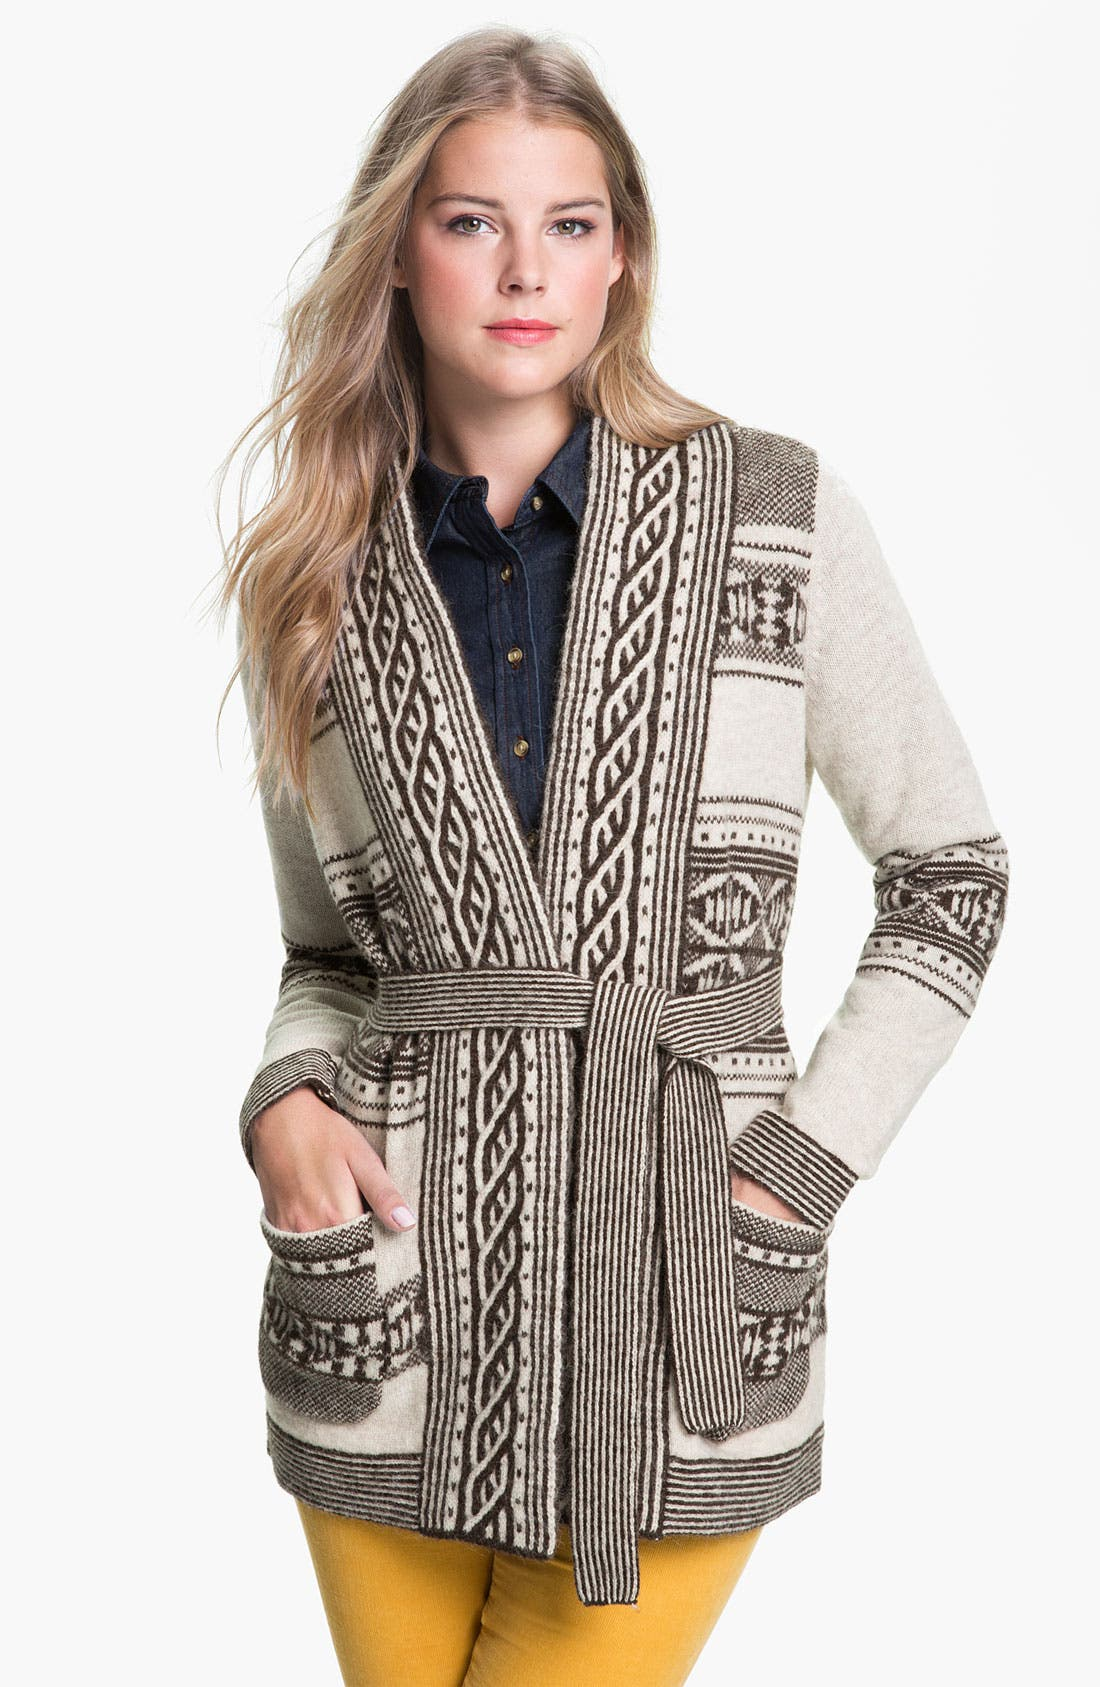 Alternate Image 1 Selected - Pendleton 'Discovery Stripe' Cardigan (Online Exclusive)